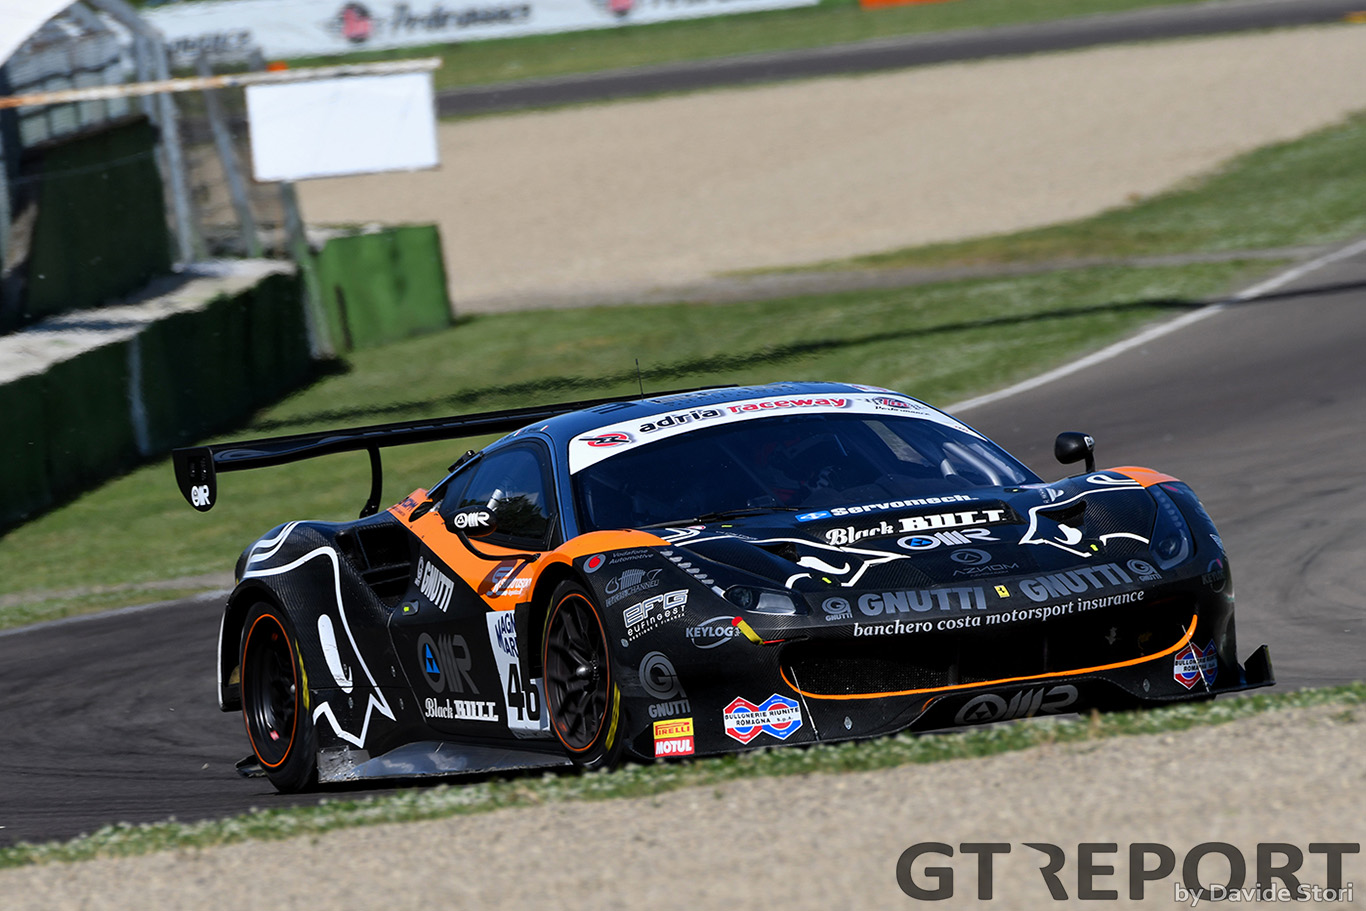 Italian GT Imola race report: No mercy